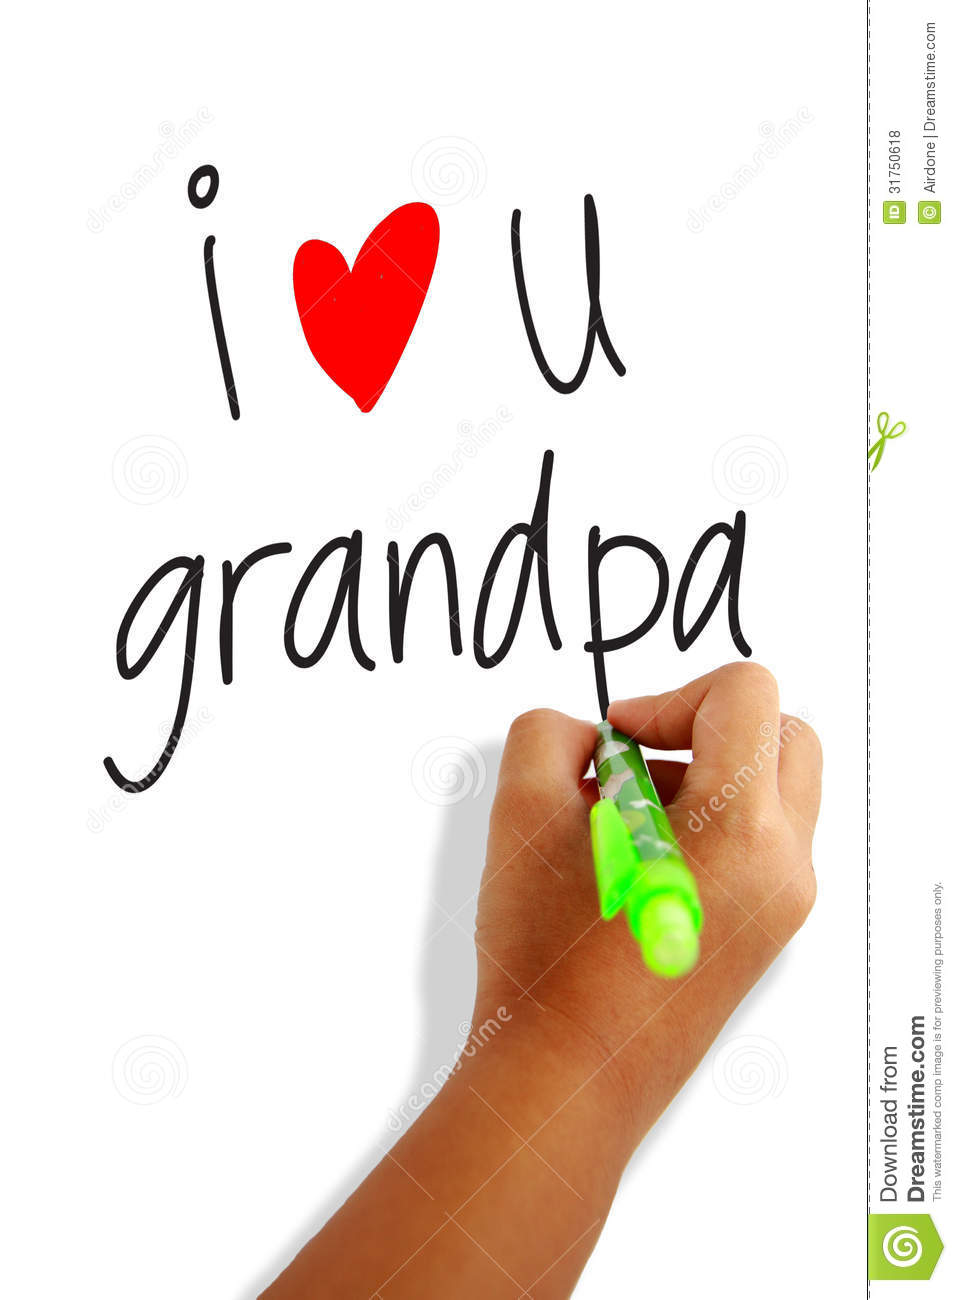 essays about my grandparents My grandparents' house is somewhere nostalgic, valuable, and touching, with the memories of years please check my essay my lyrics my leg is turning blue.